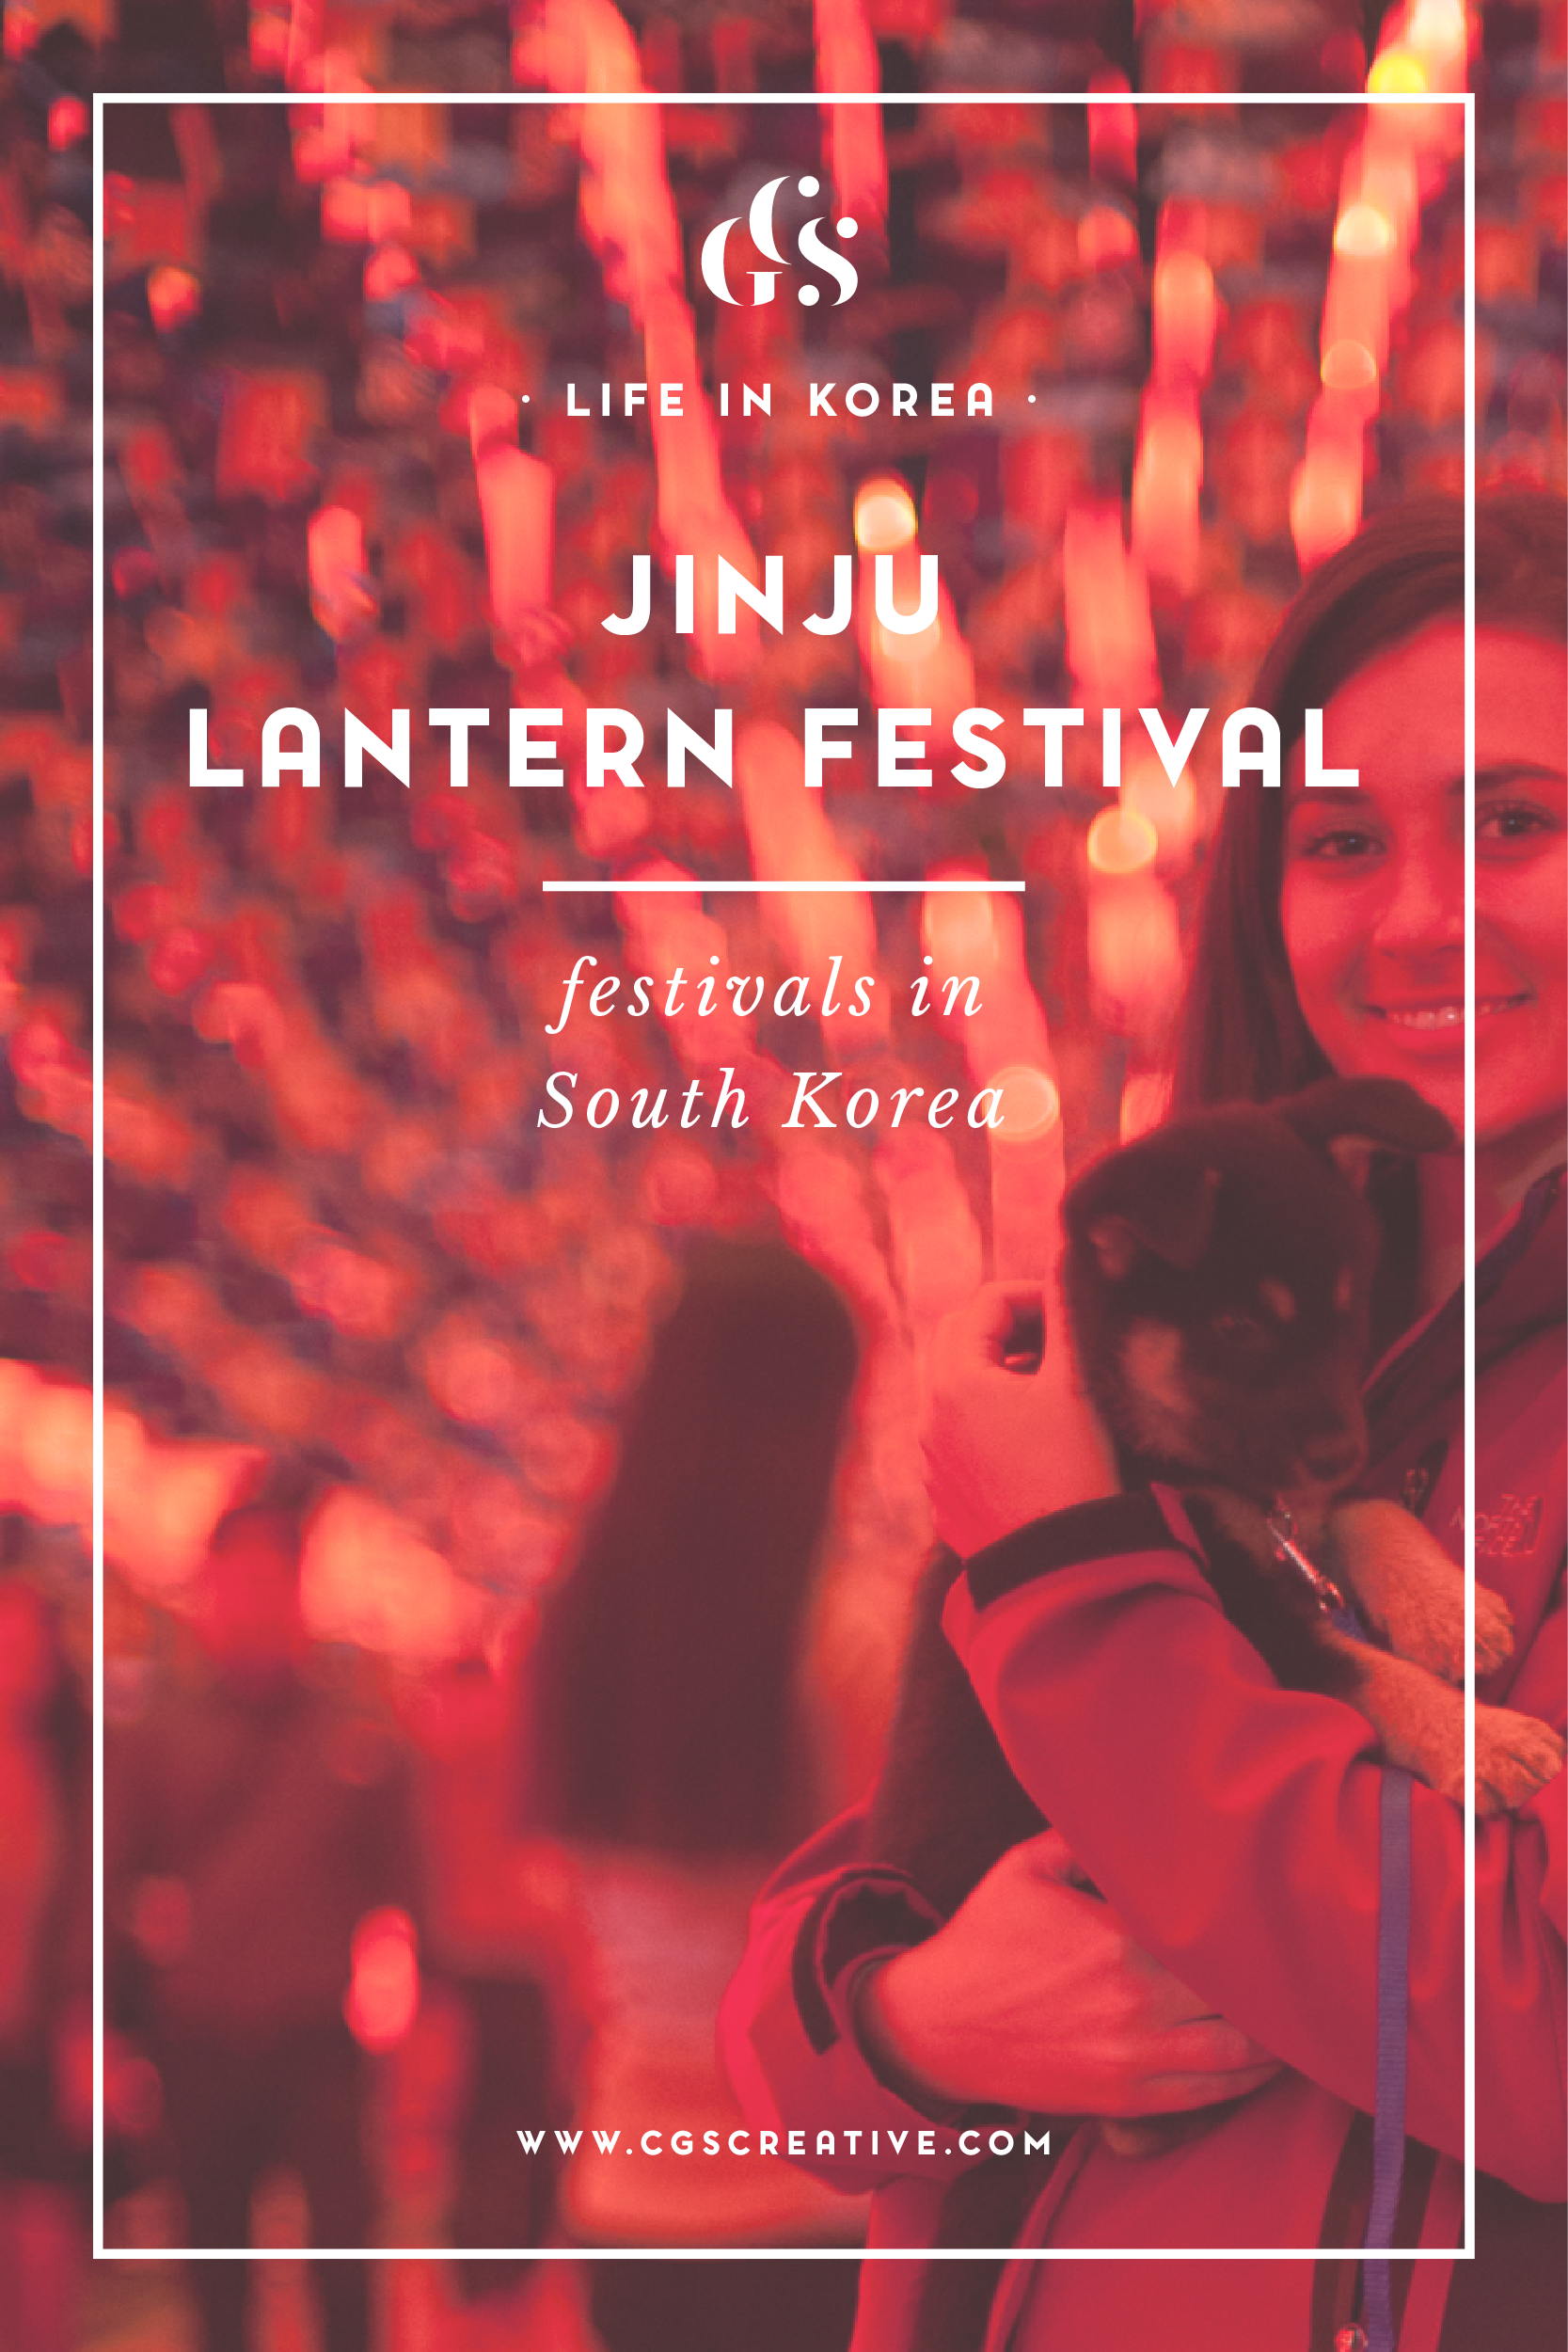 Jinju Lanter Festiva South Korea